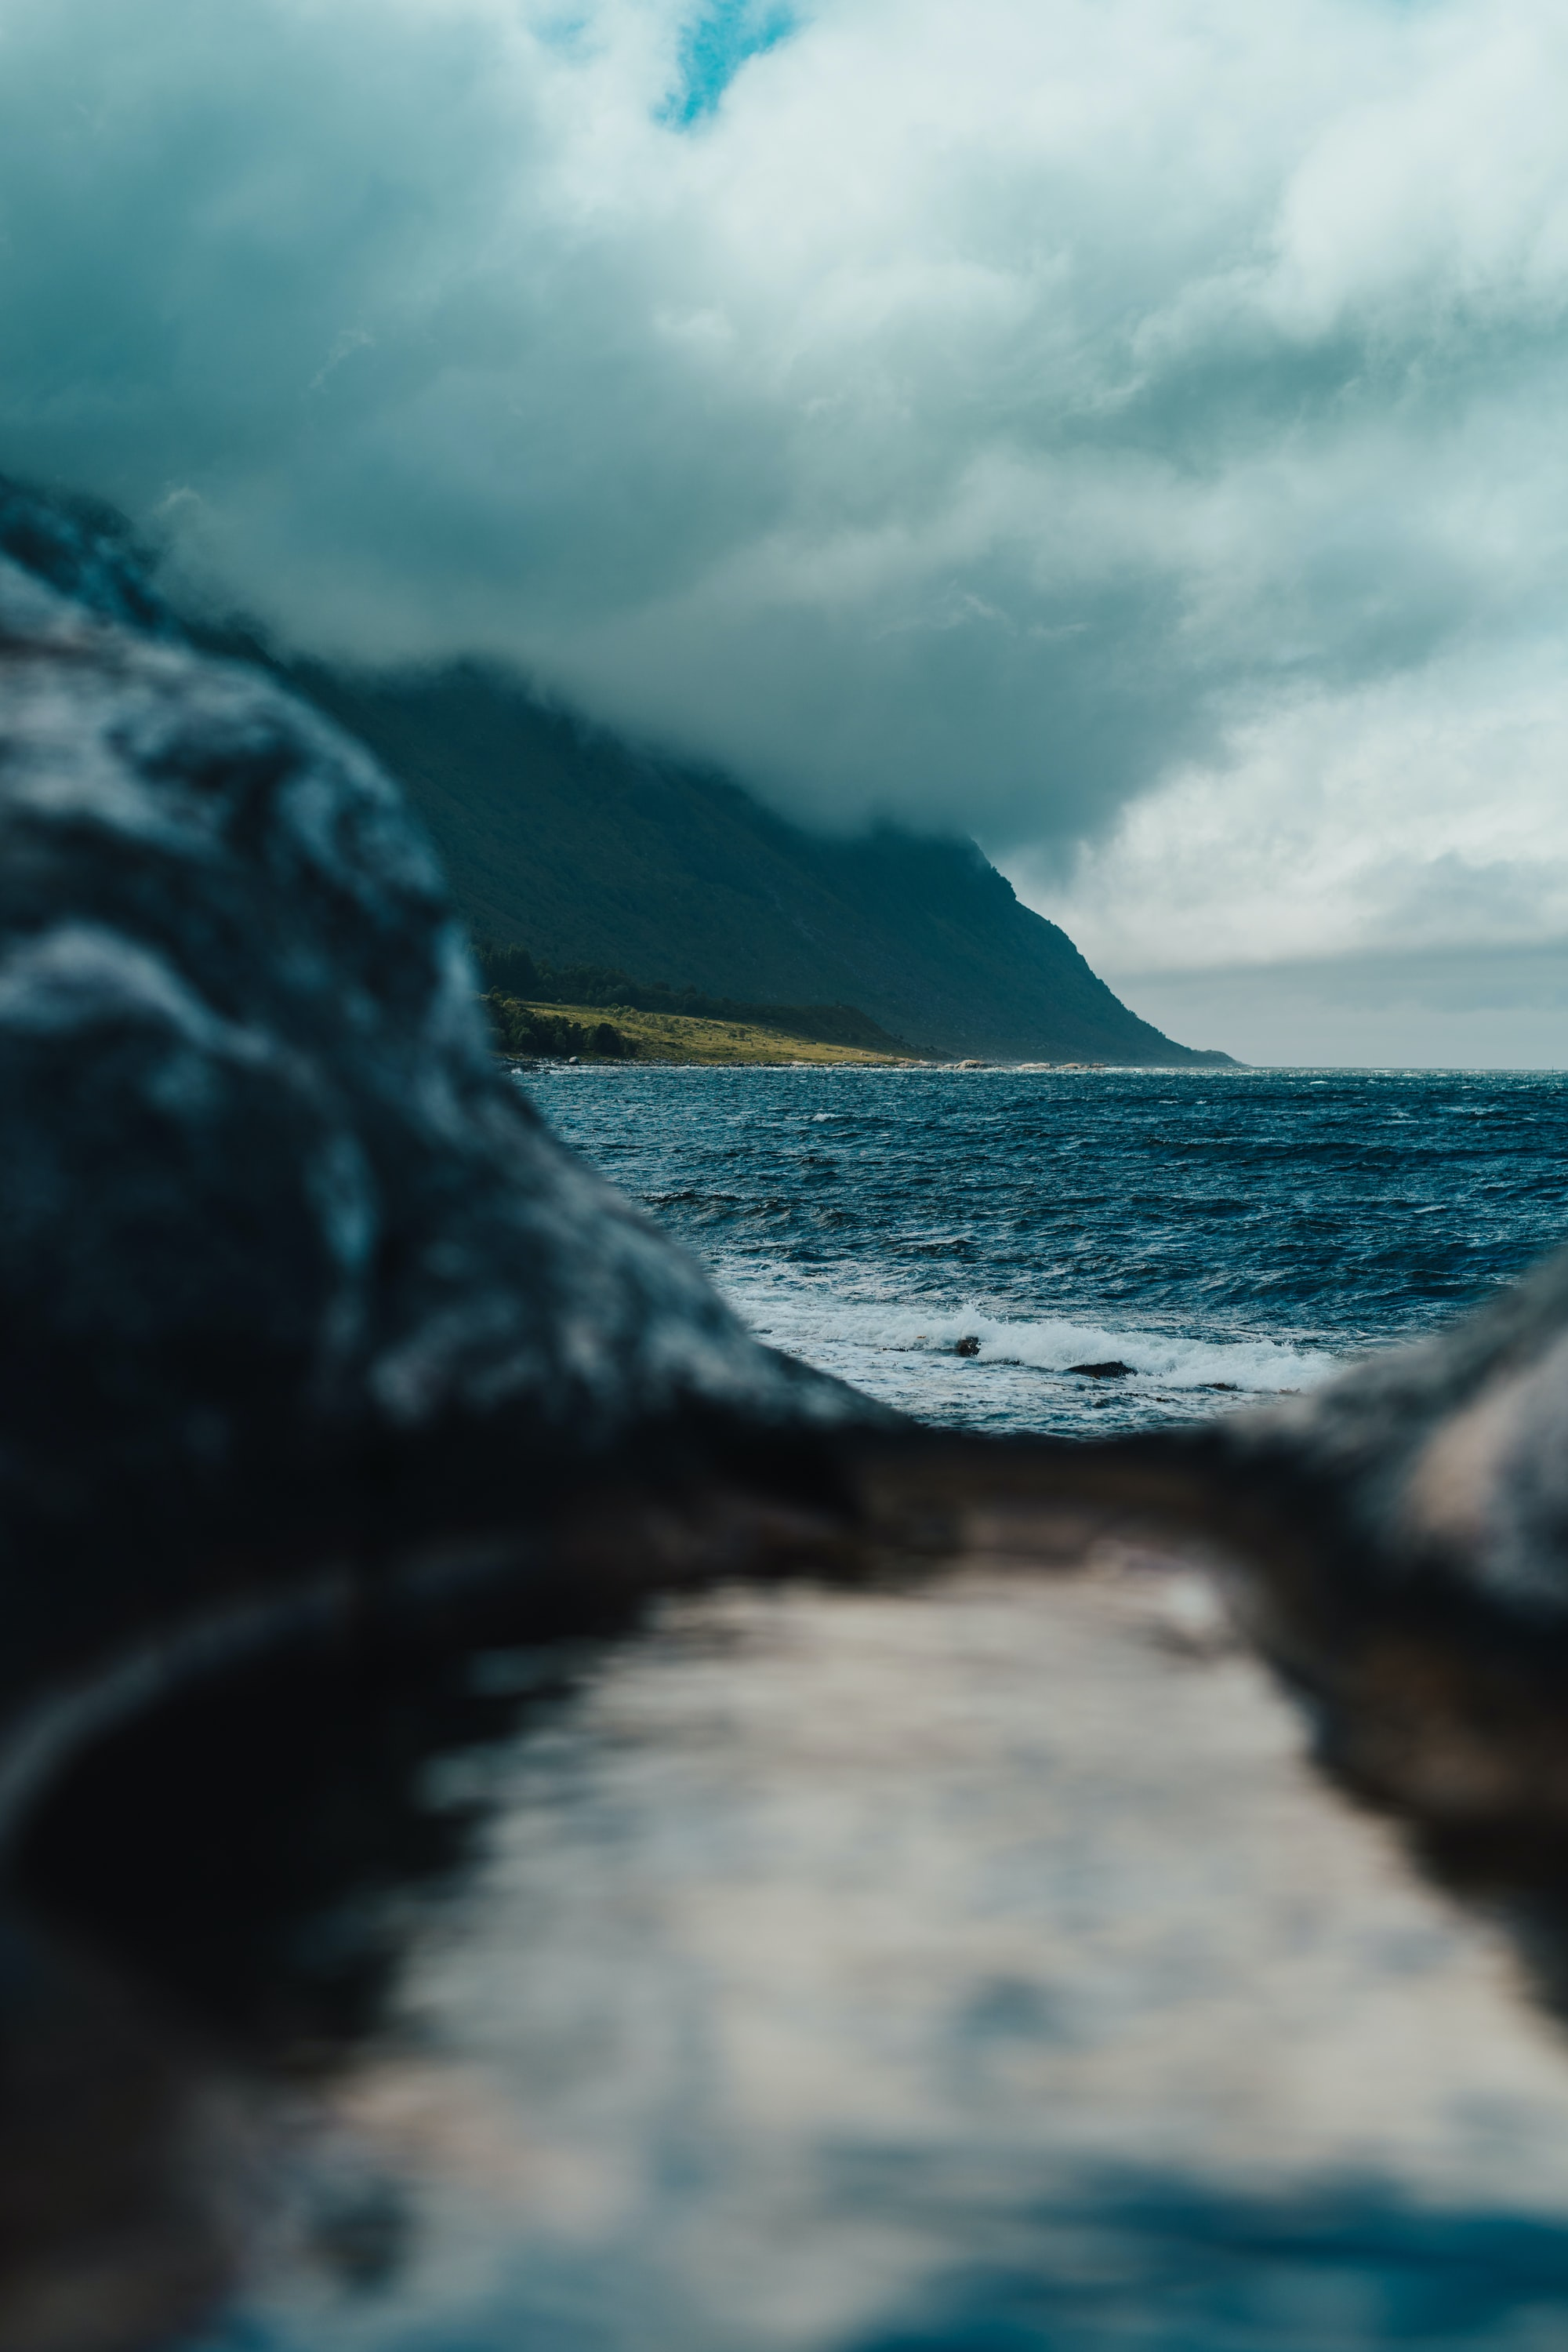 selective focus photography of body of water